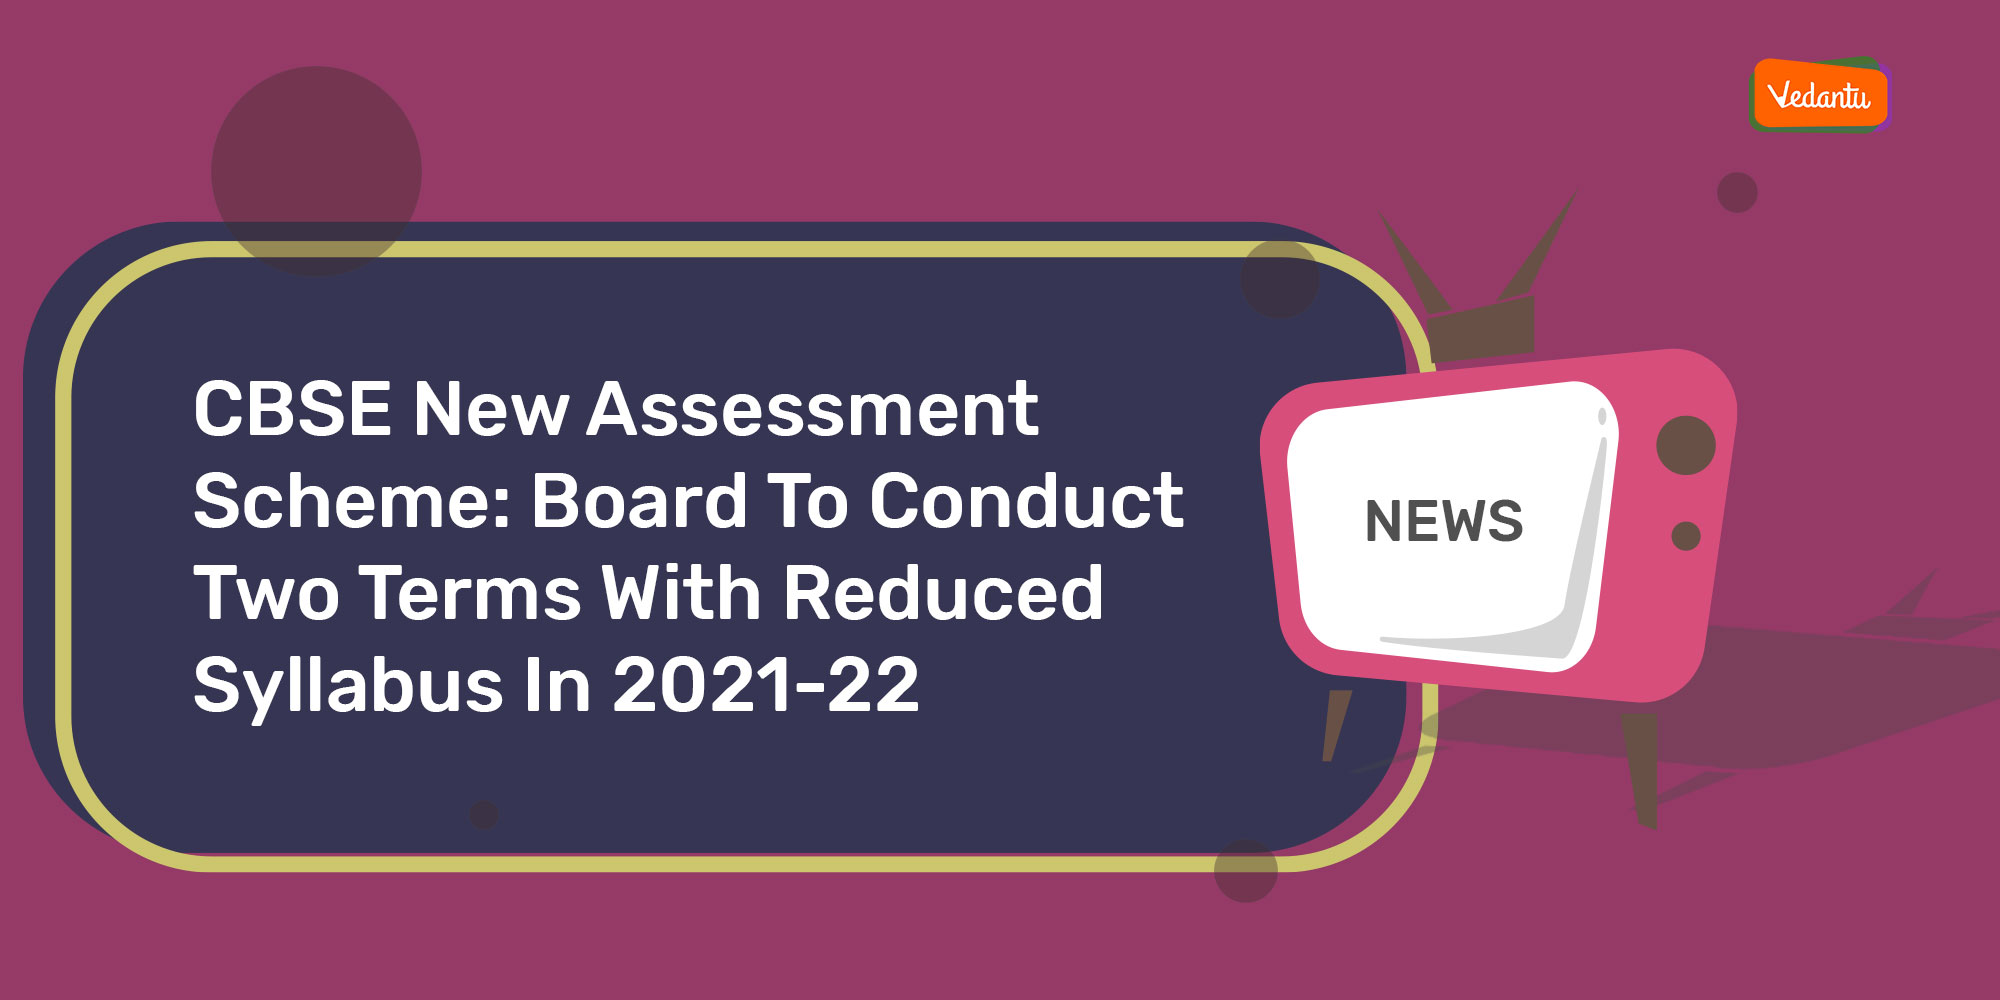 CBSE New Assessment Scheme: Board to Conduct Two Terms with Reduced Syllabus in 2021-22